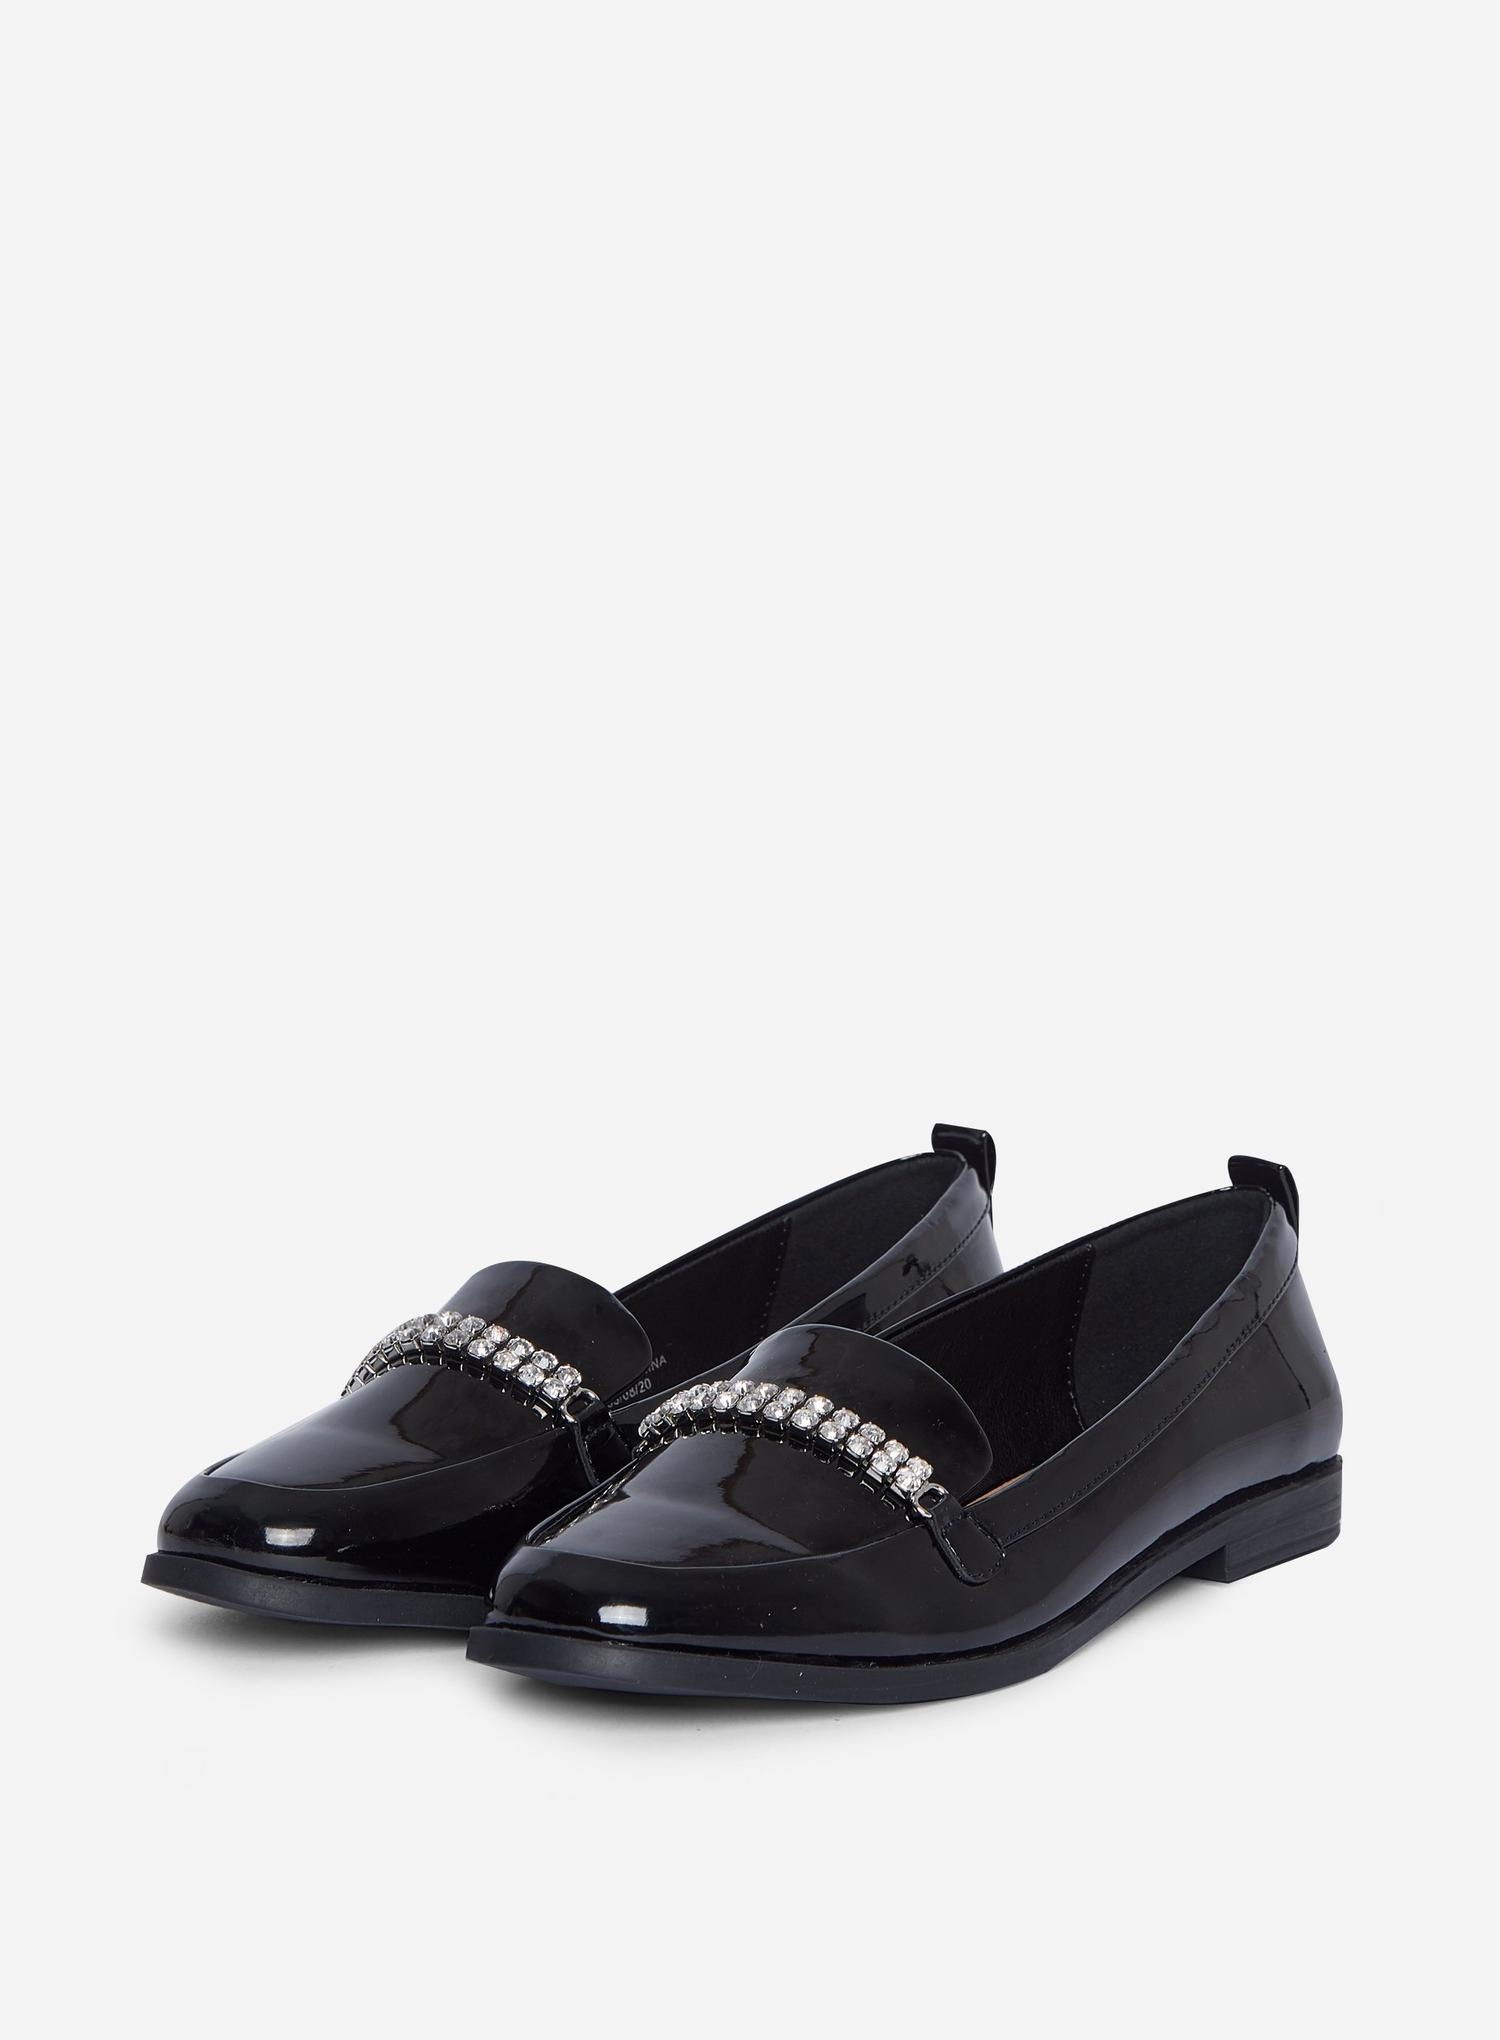 105 Black Lightning Loafers image number 1